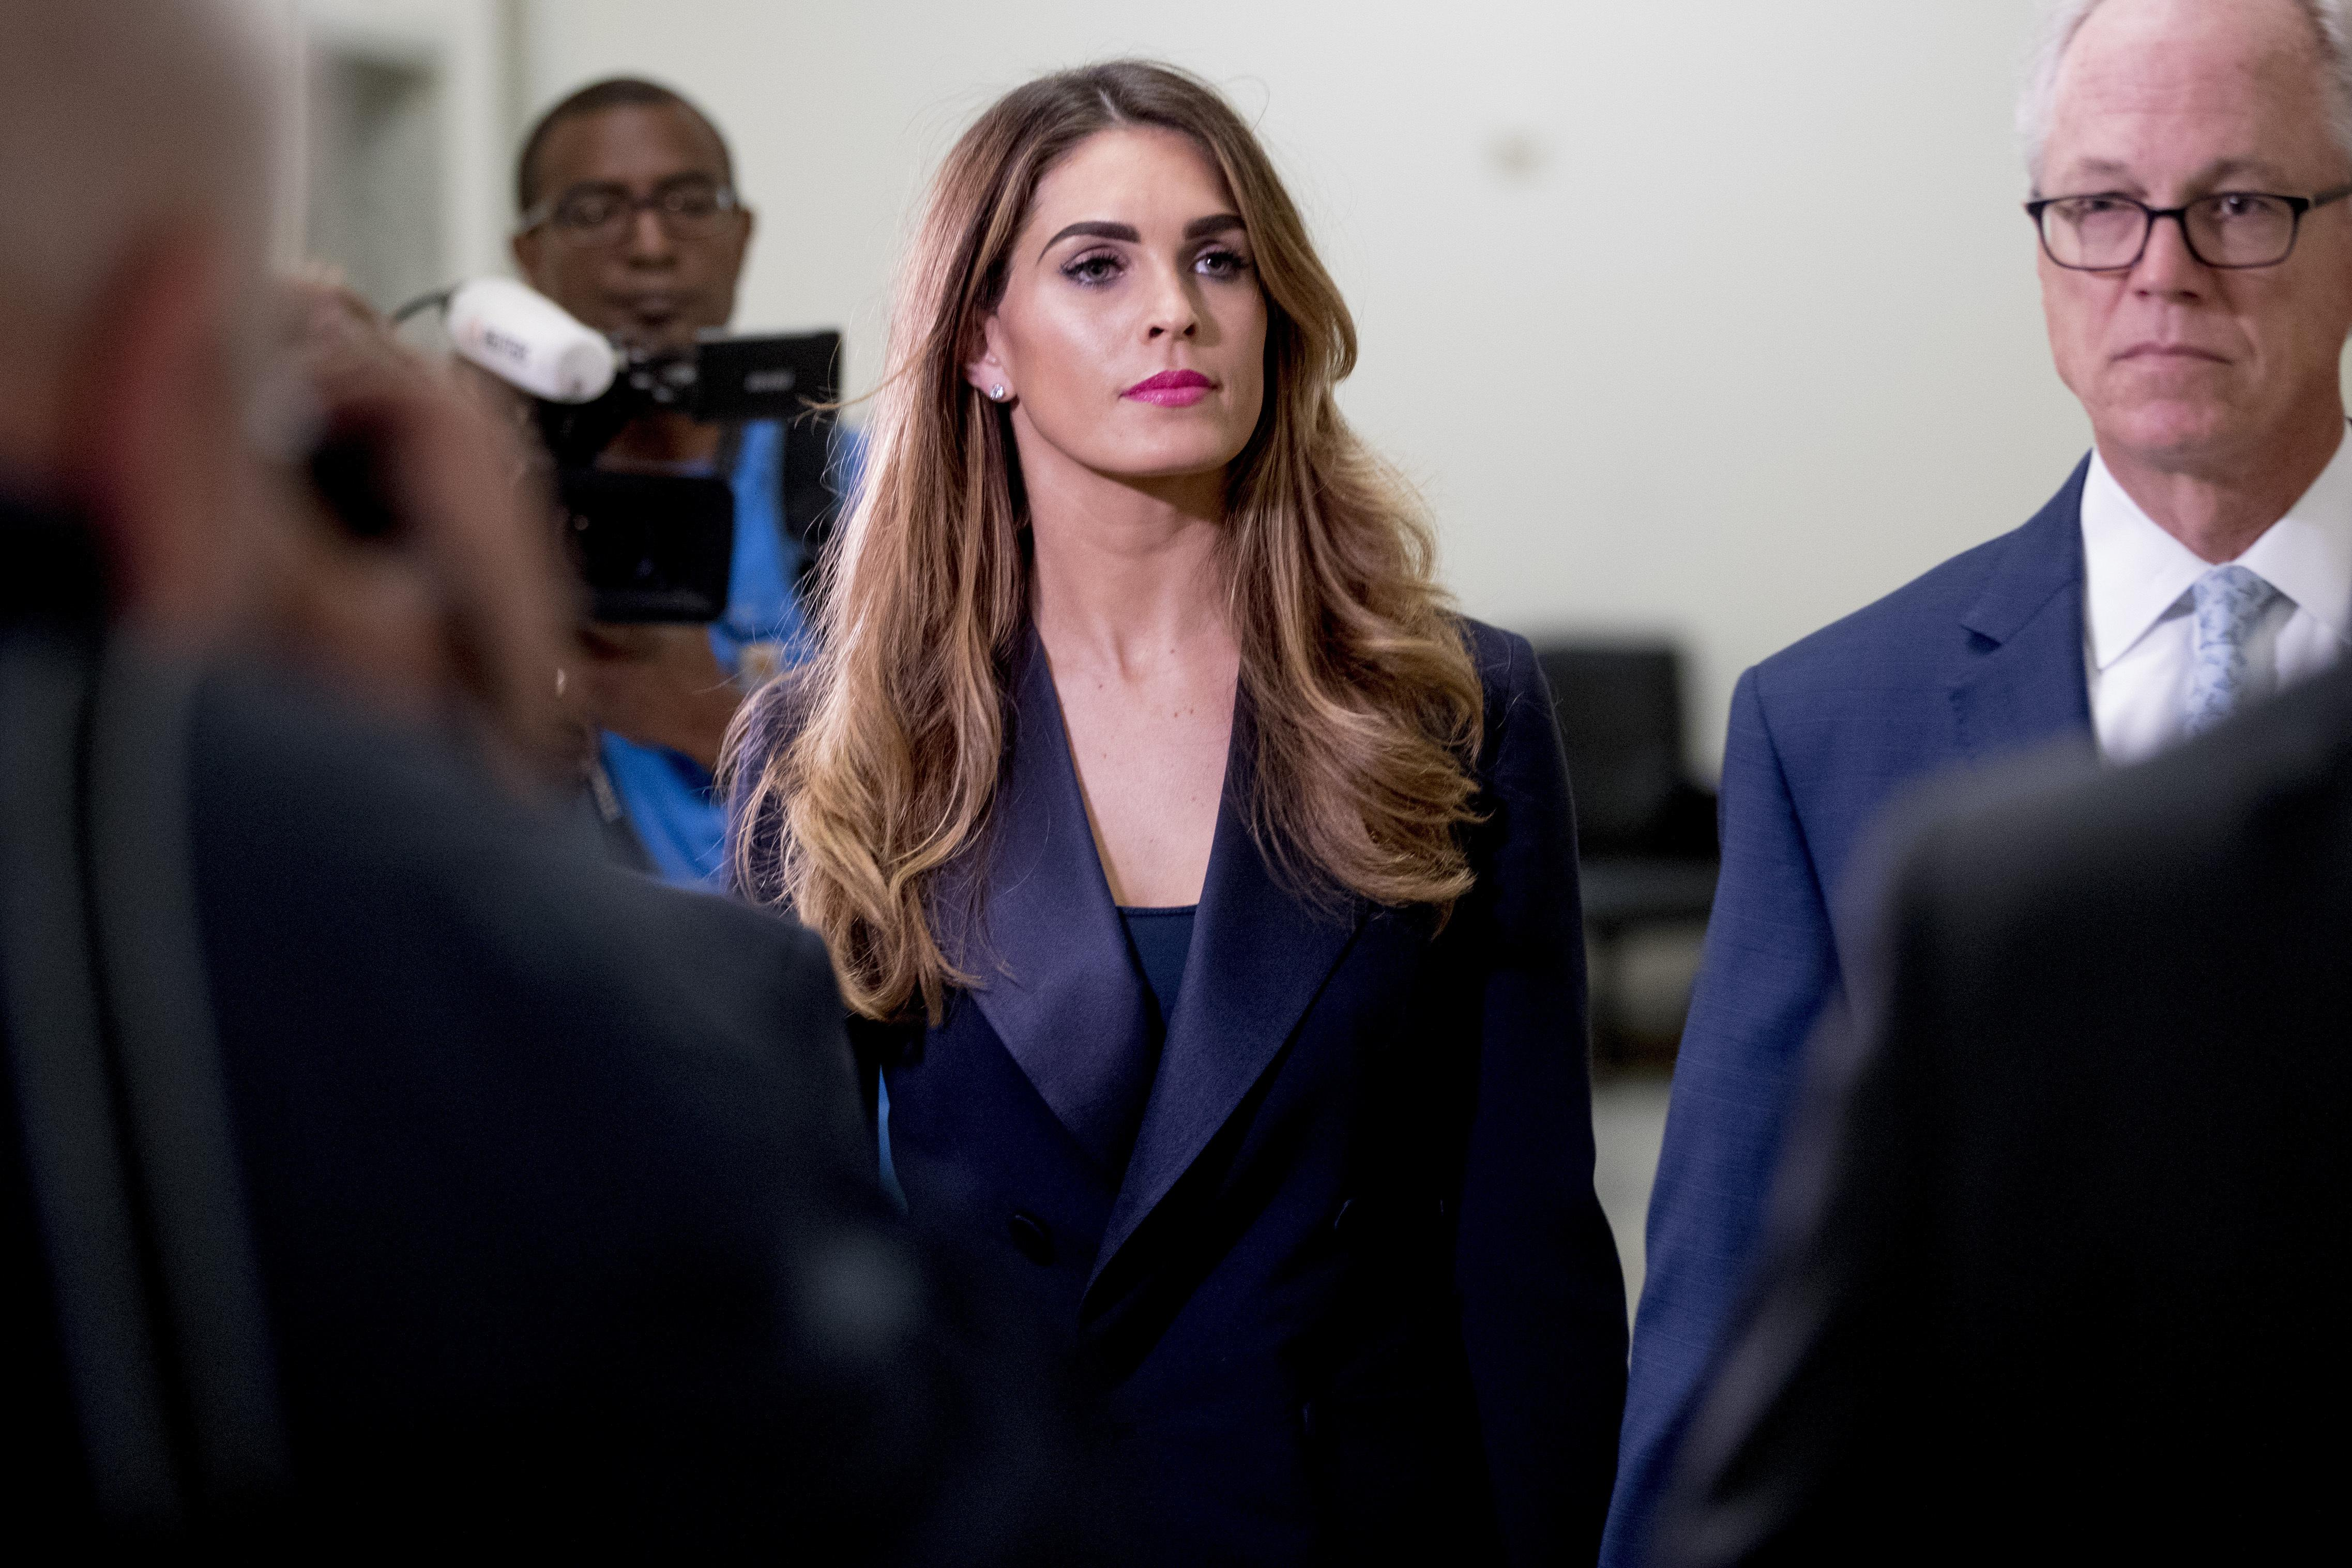 'This is like Inception': Hope Hicks questioning exposes Democrats' drive to impeach Trump